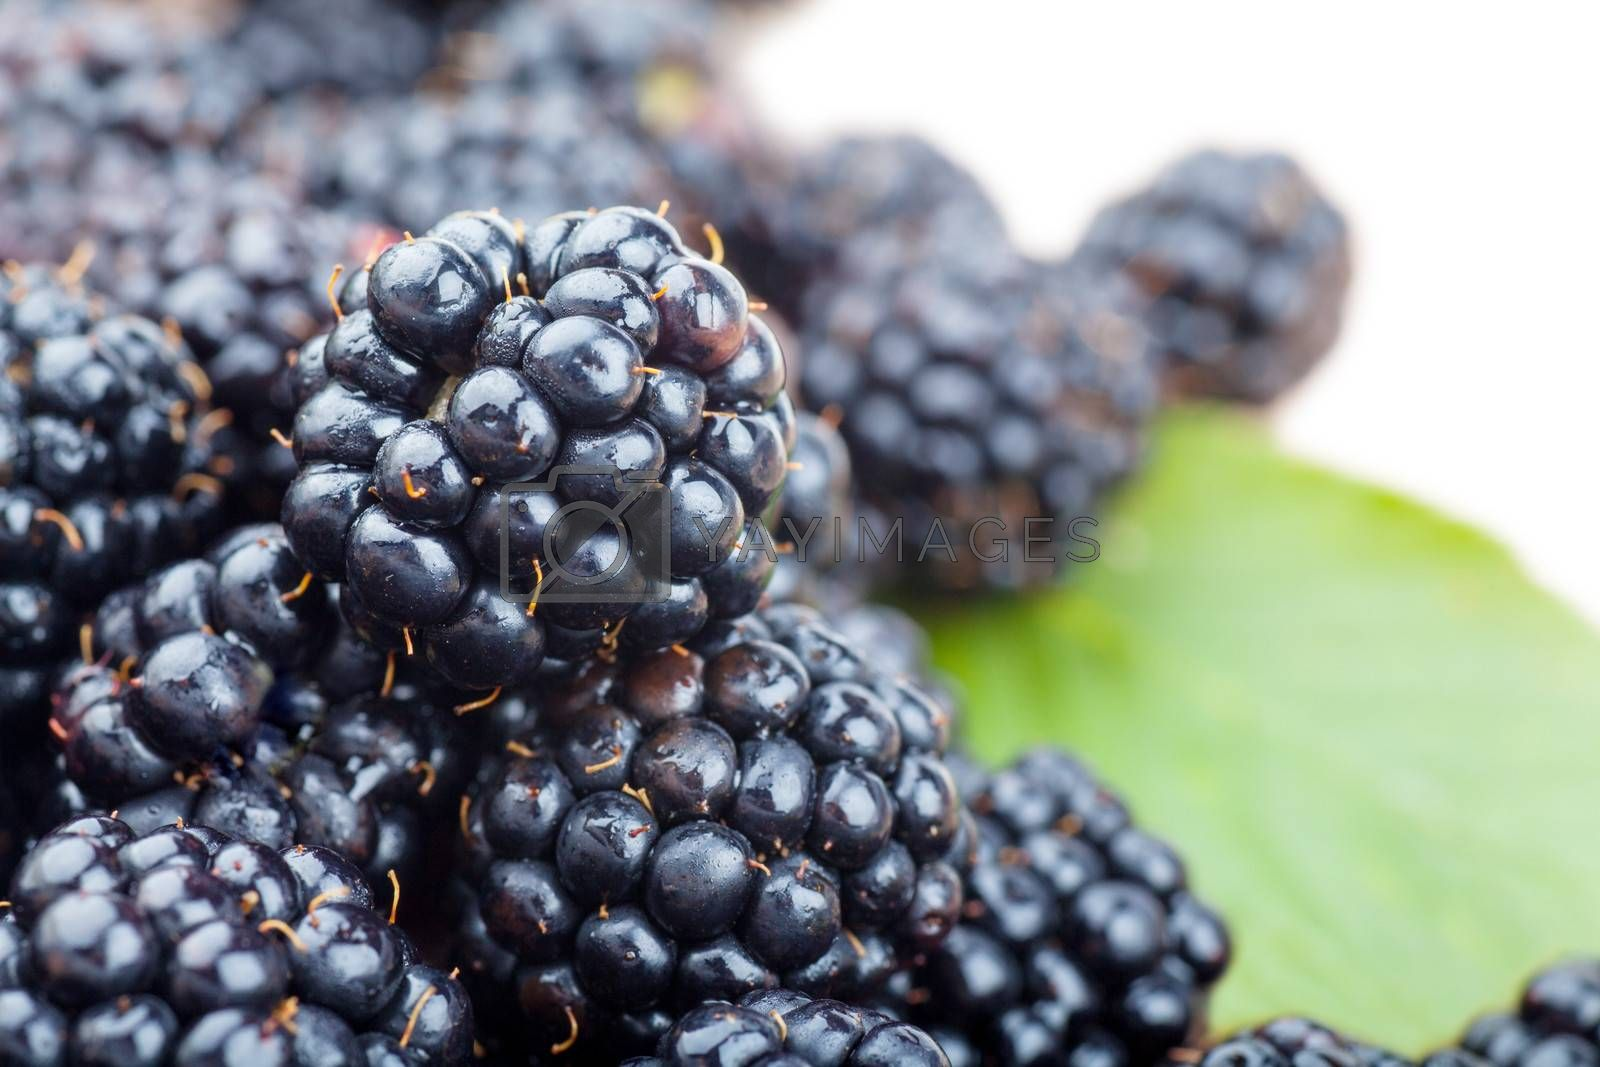 Macro view of fresh ripe blackberries